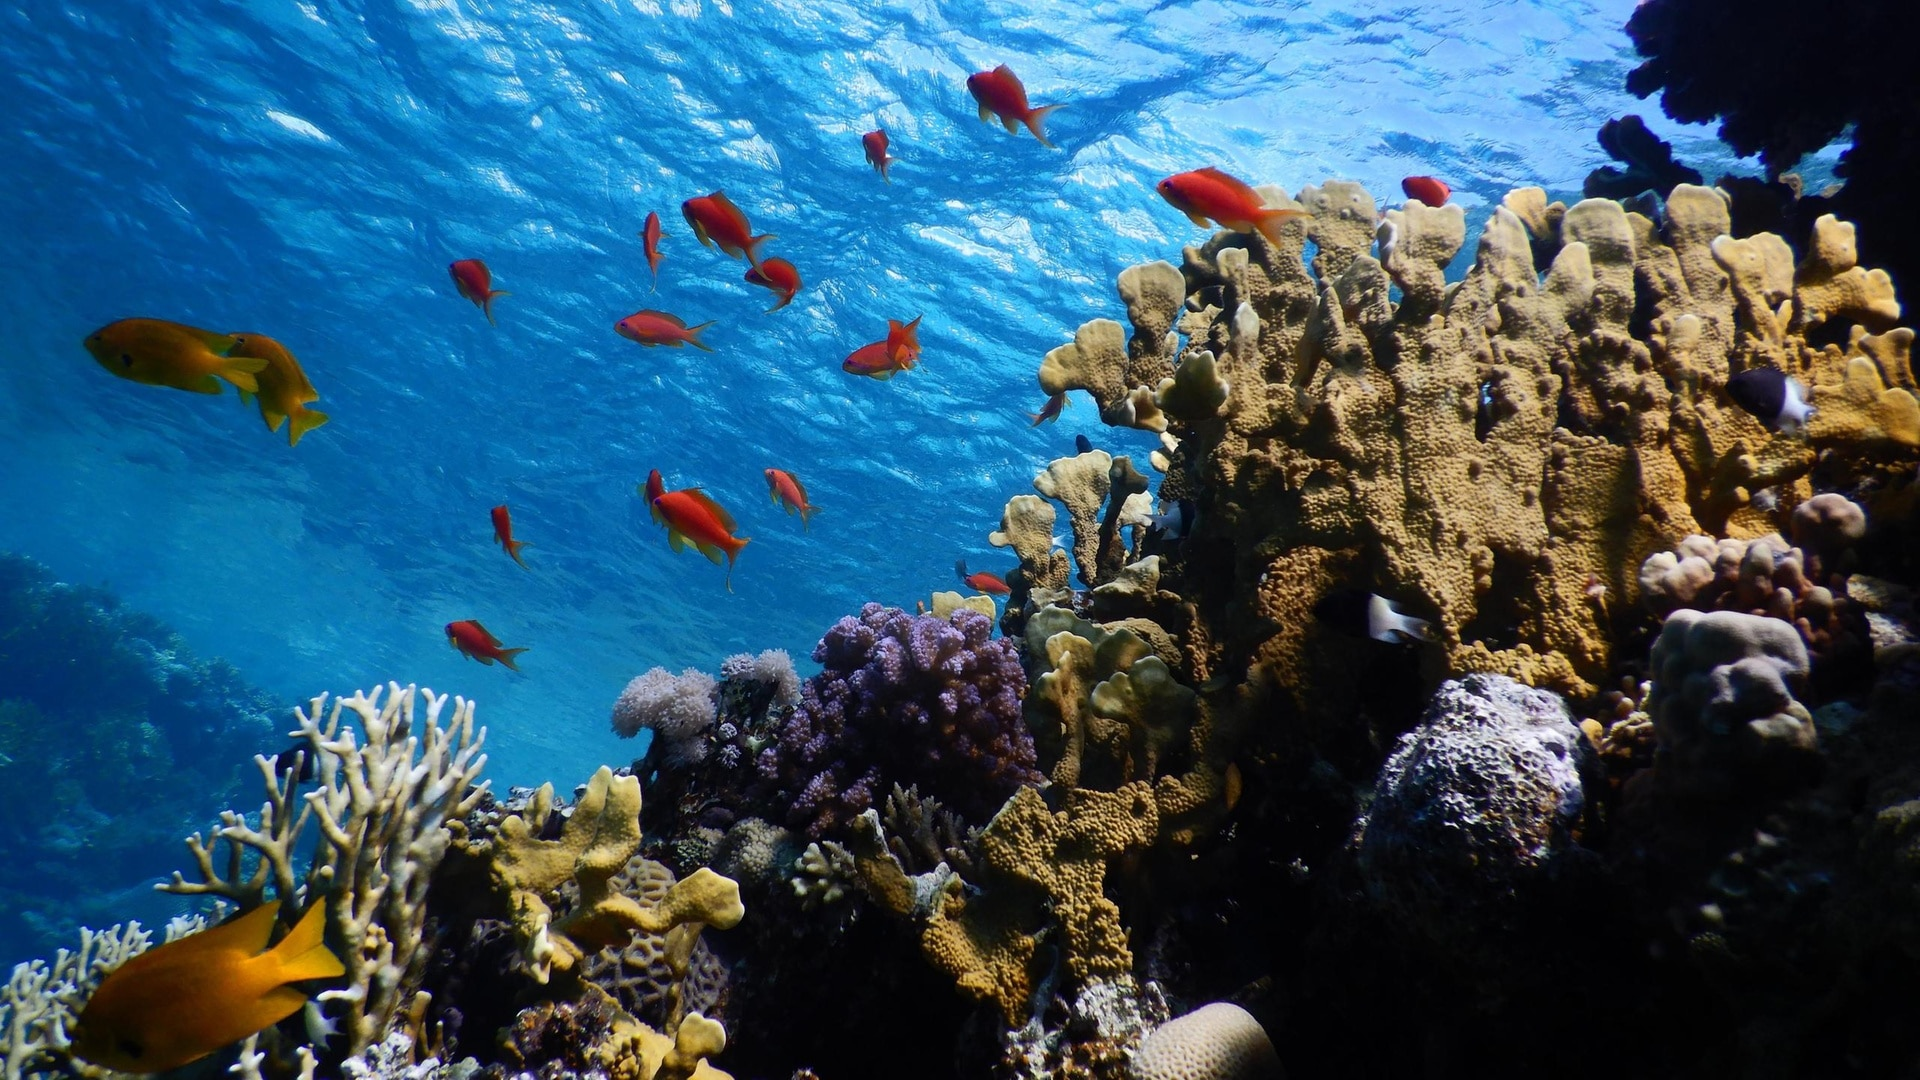 Swiss scientific diplomacy sets sail to save corals